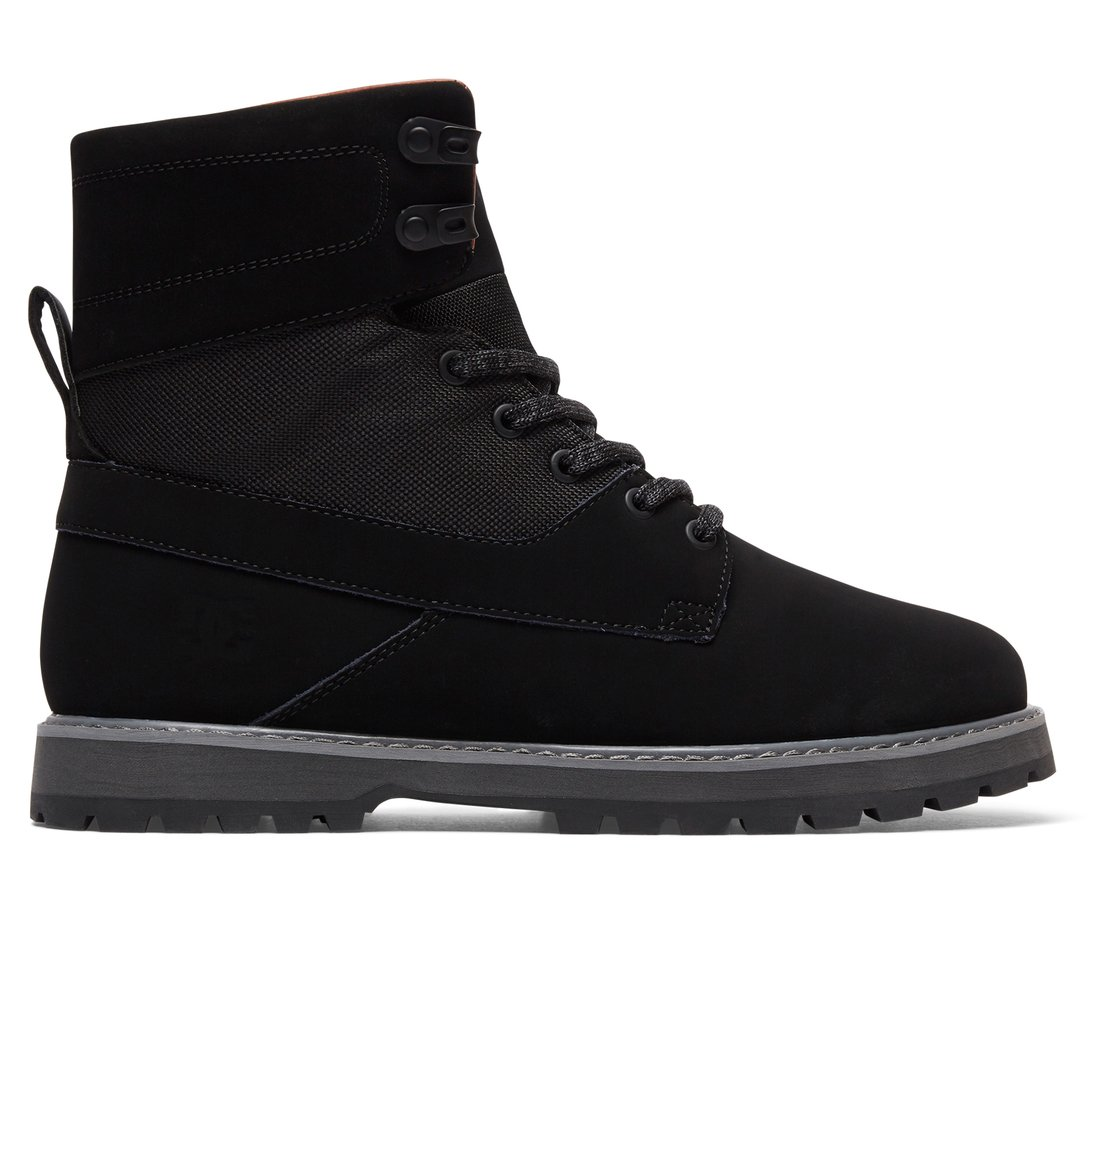 fc7b4d62b42d6 Chaussures Homme Outdoor DC SHOES - tritOO